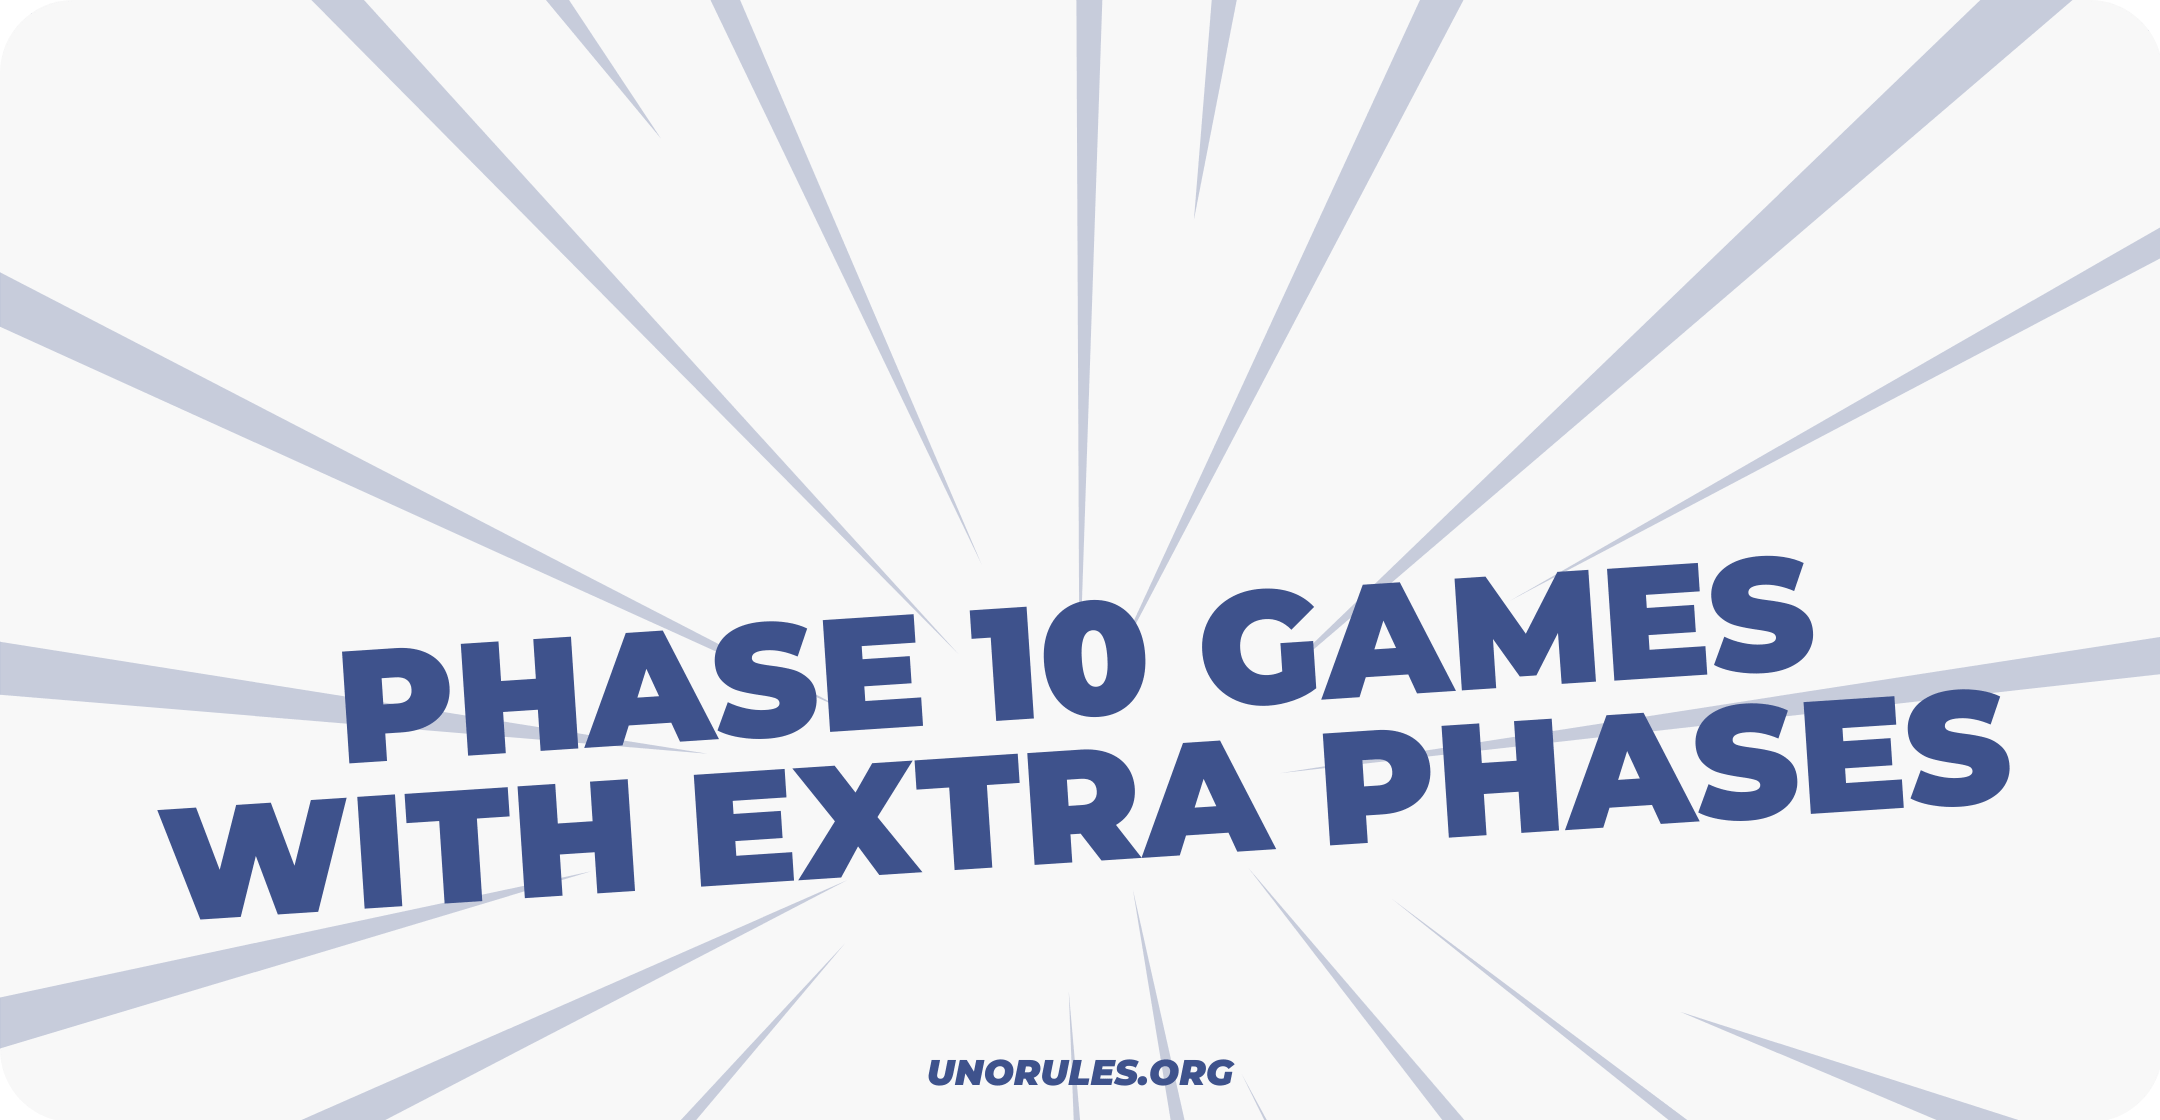 Phase 10 games with extra phases